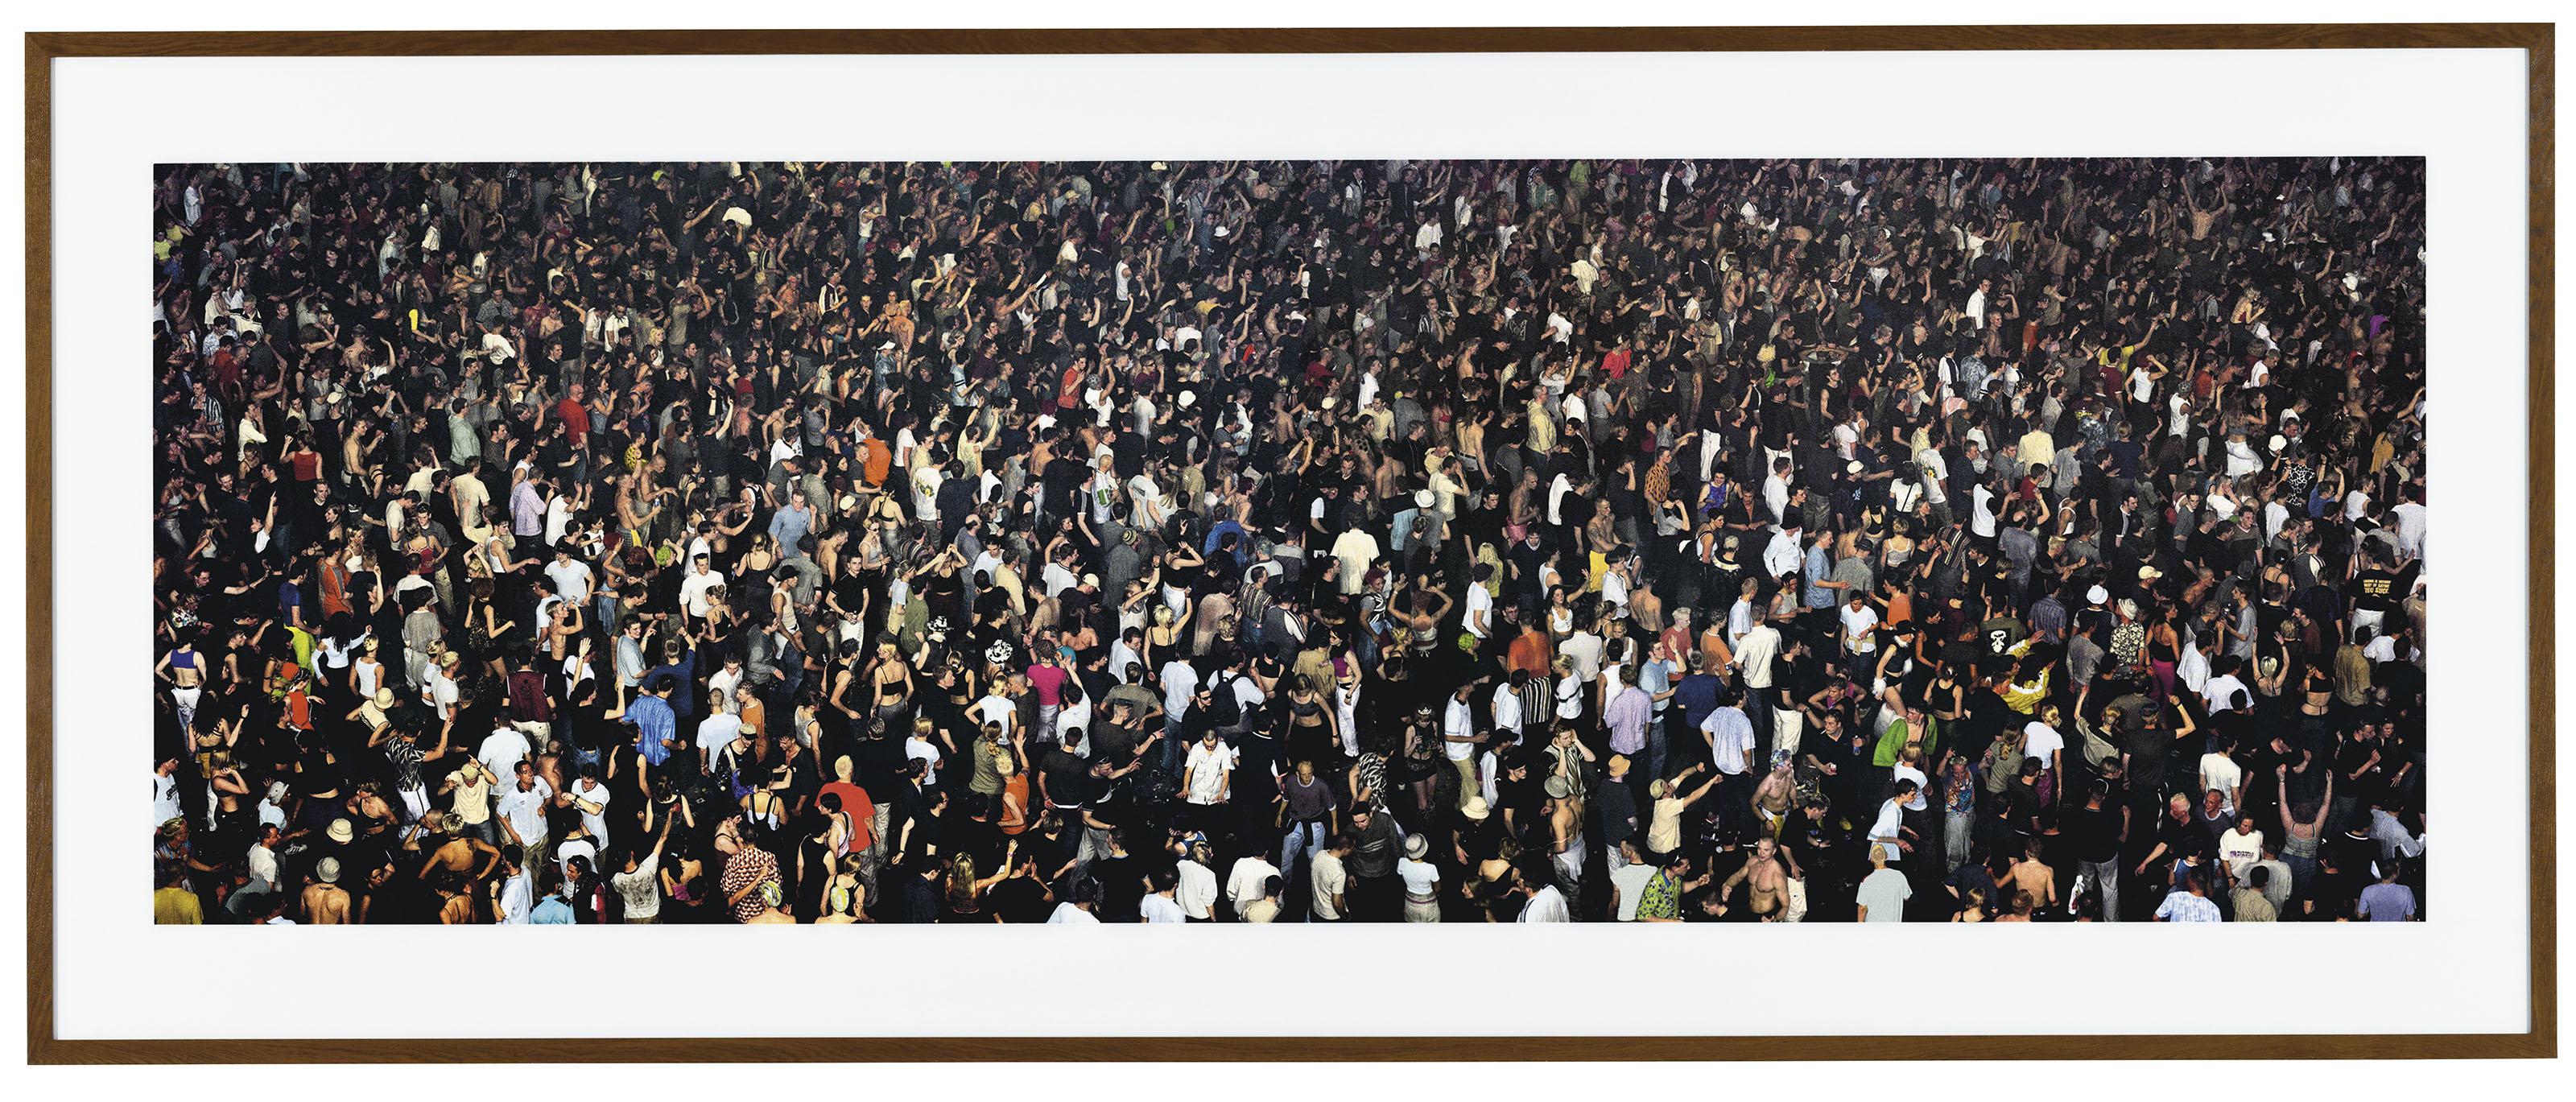 Andreas Gursky (b. 1955), May Day IV. Overall 82 x 200  in (208.3 x 508  cm). Estimate £500,000-700,000. This lot is offered in Masterpieces of Design & Photography on 3 October 2017  at Christie's in London